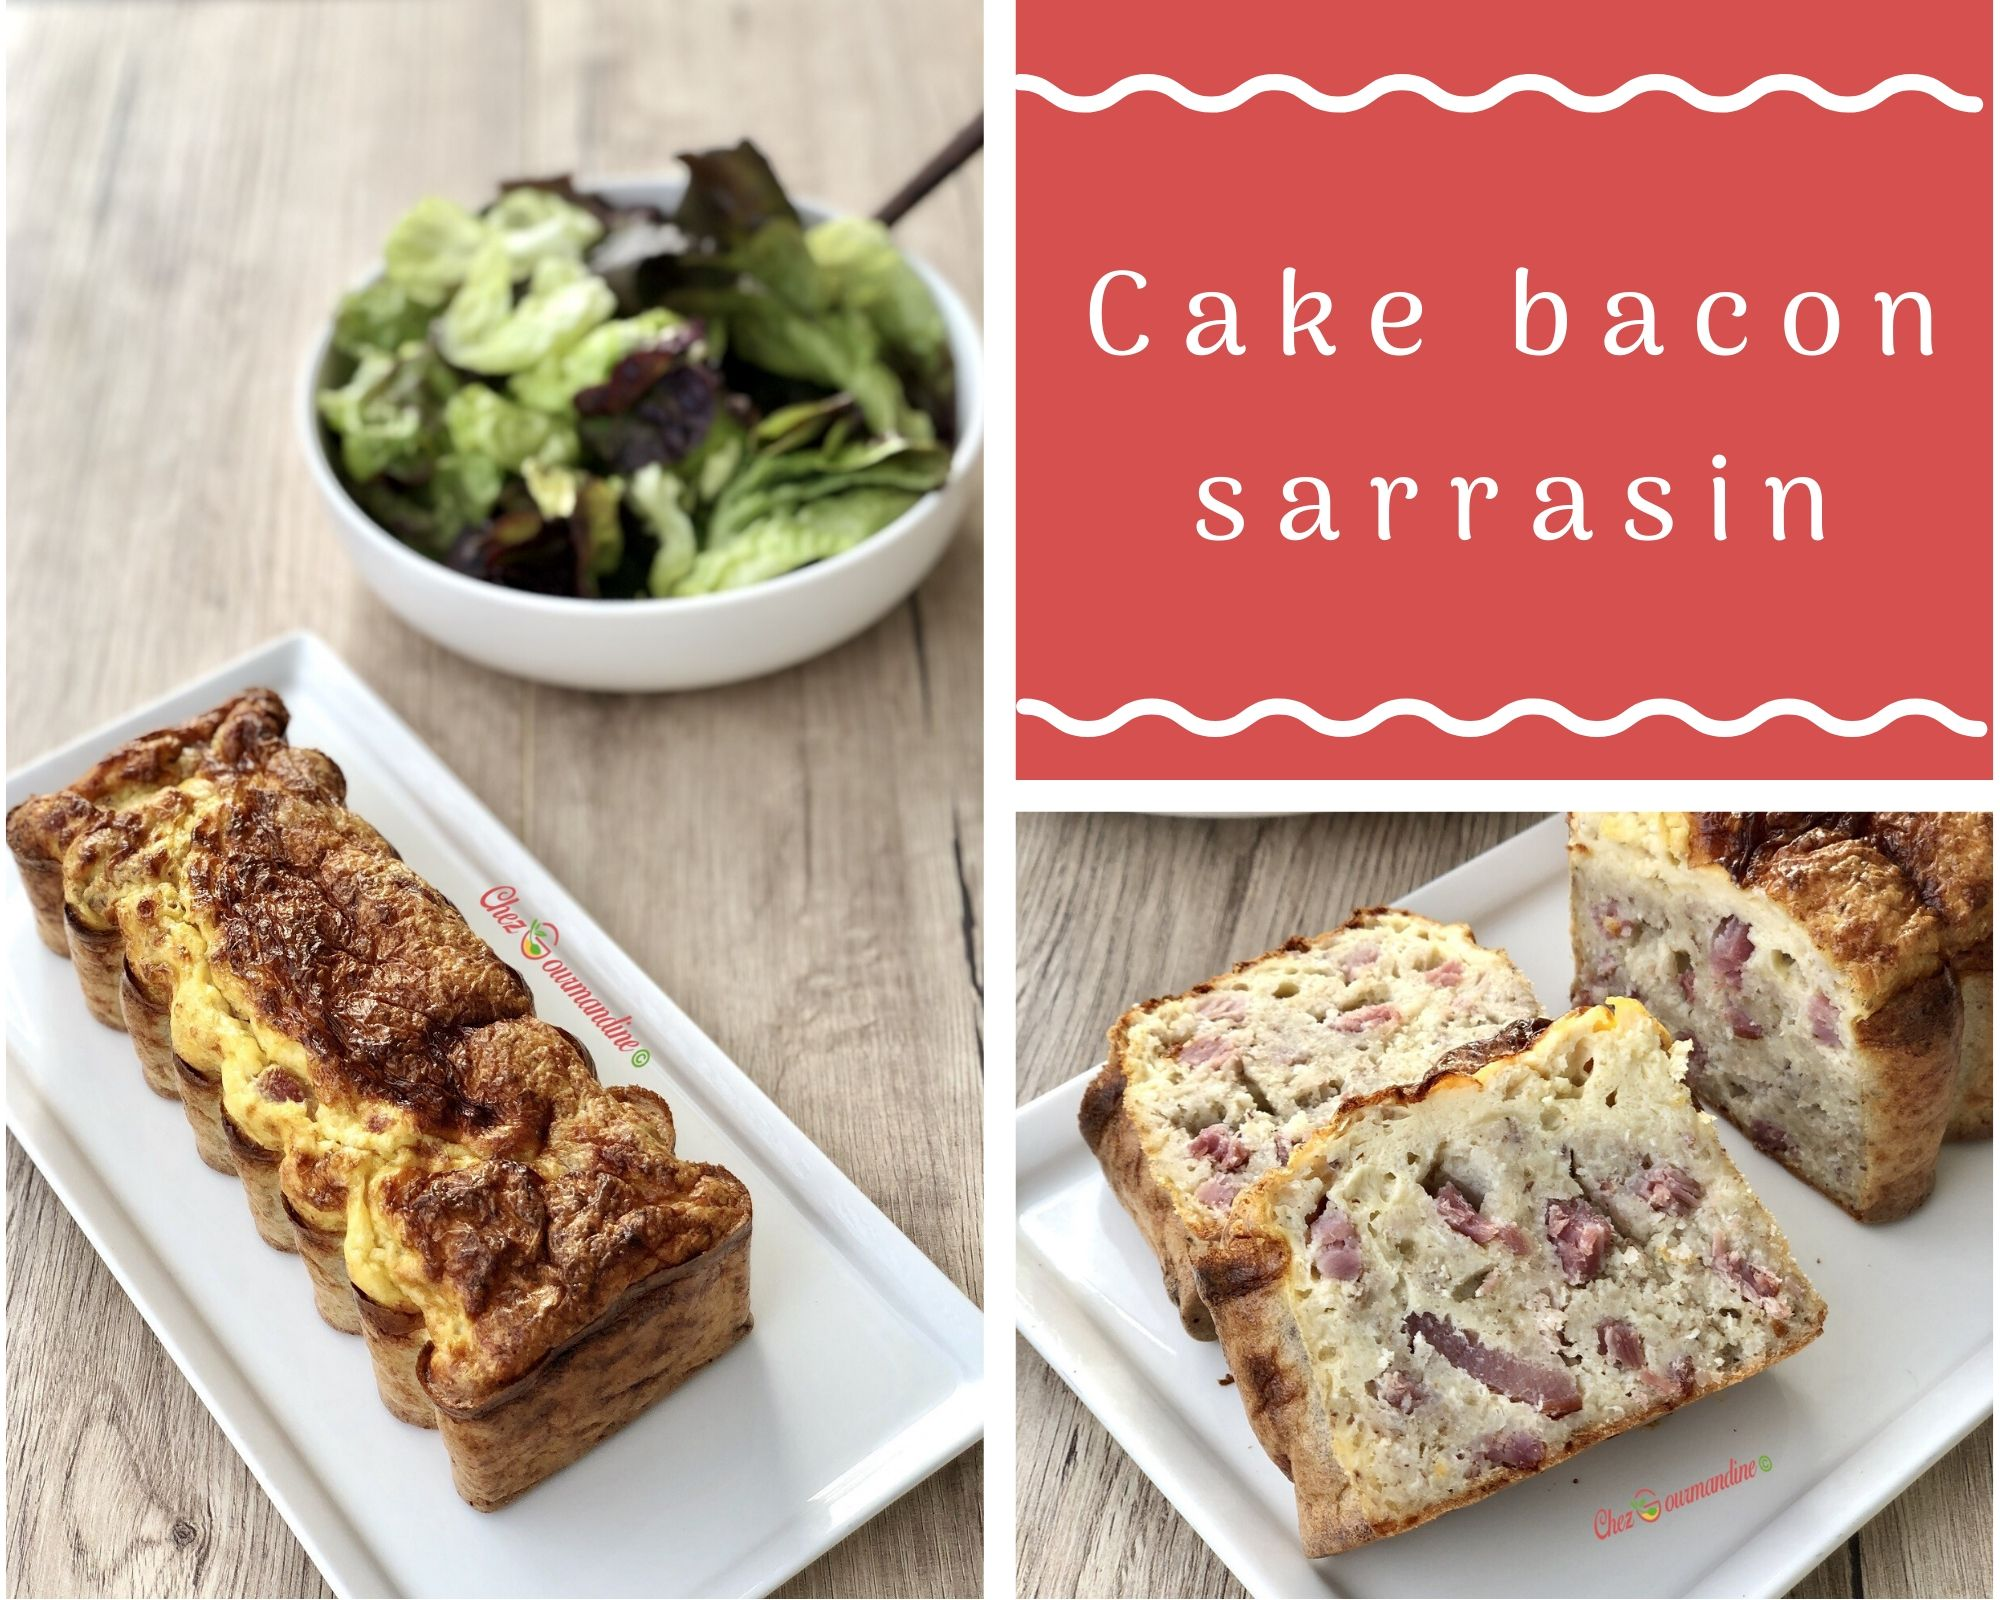 Cake bacon sarrasin